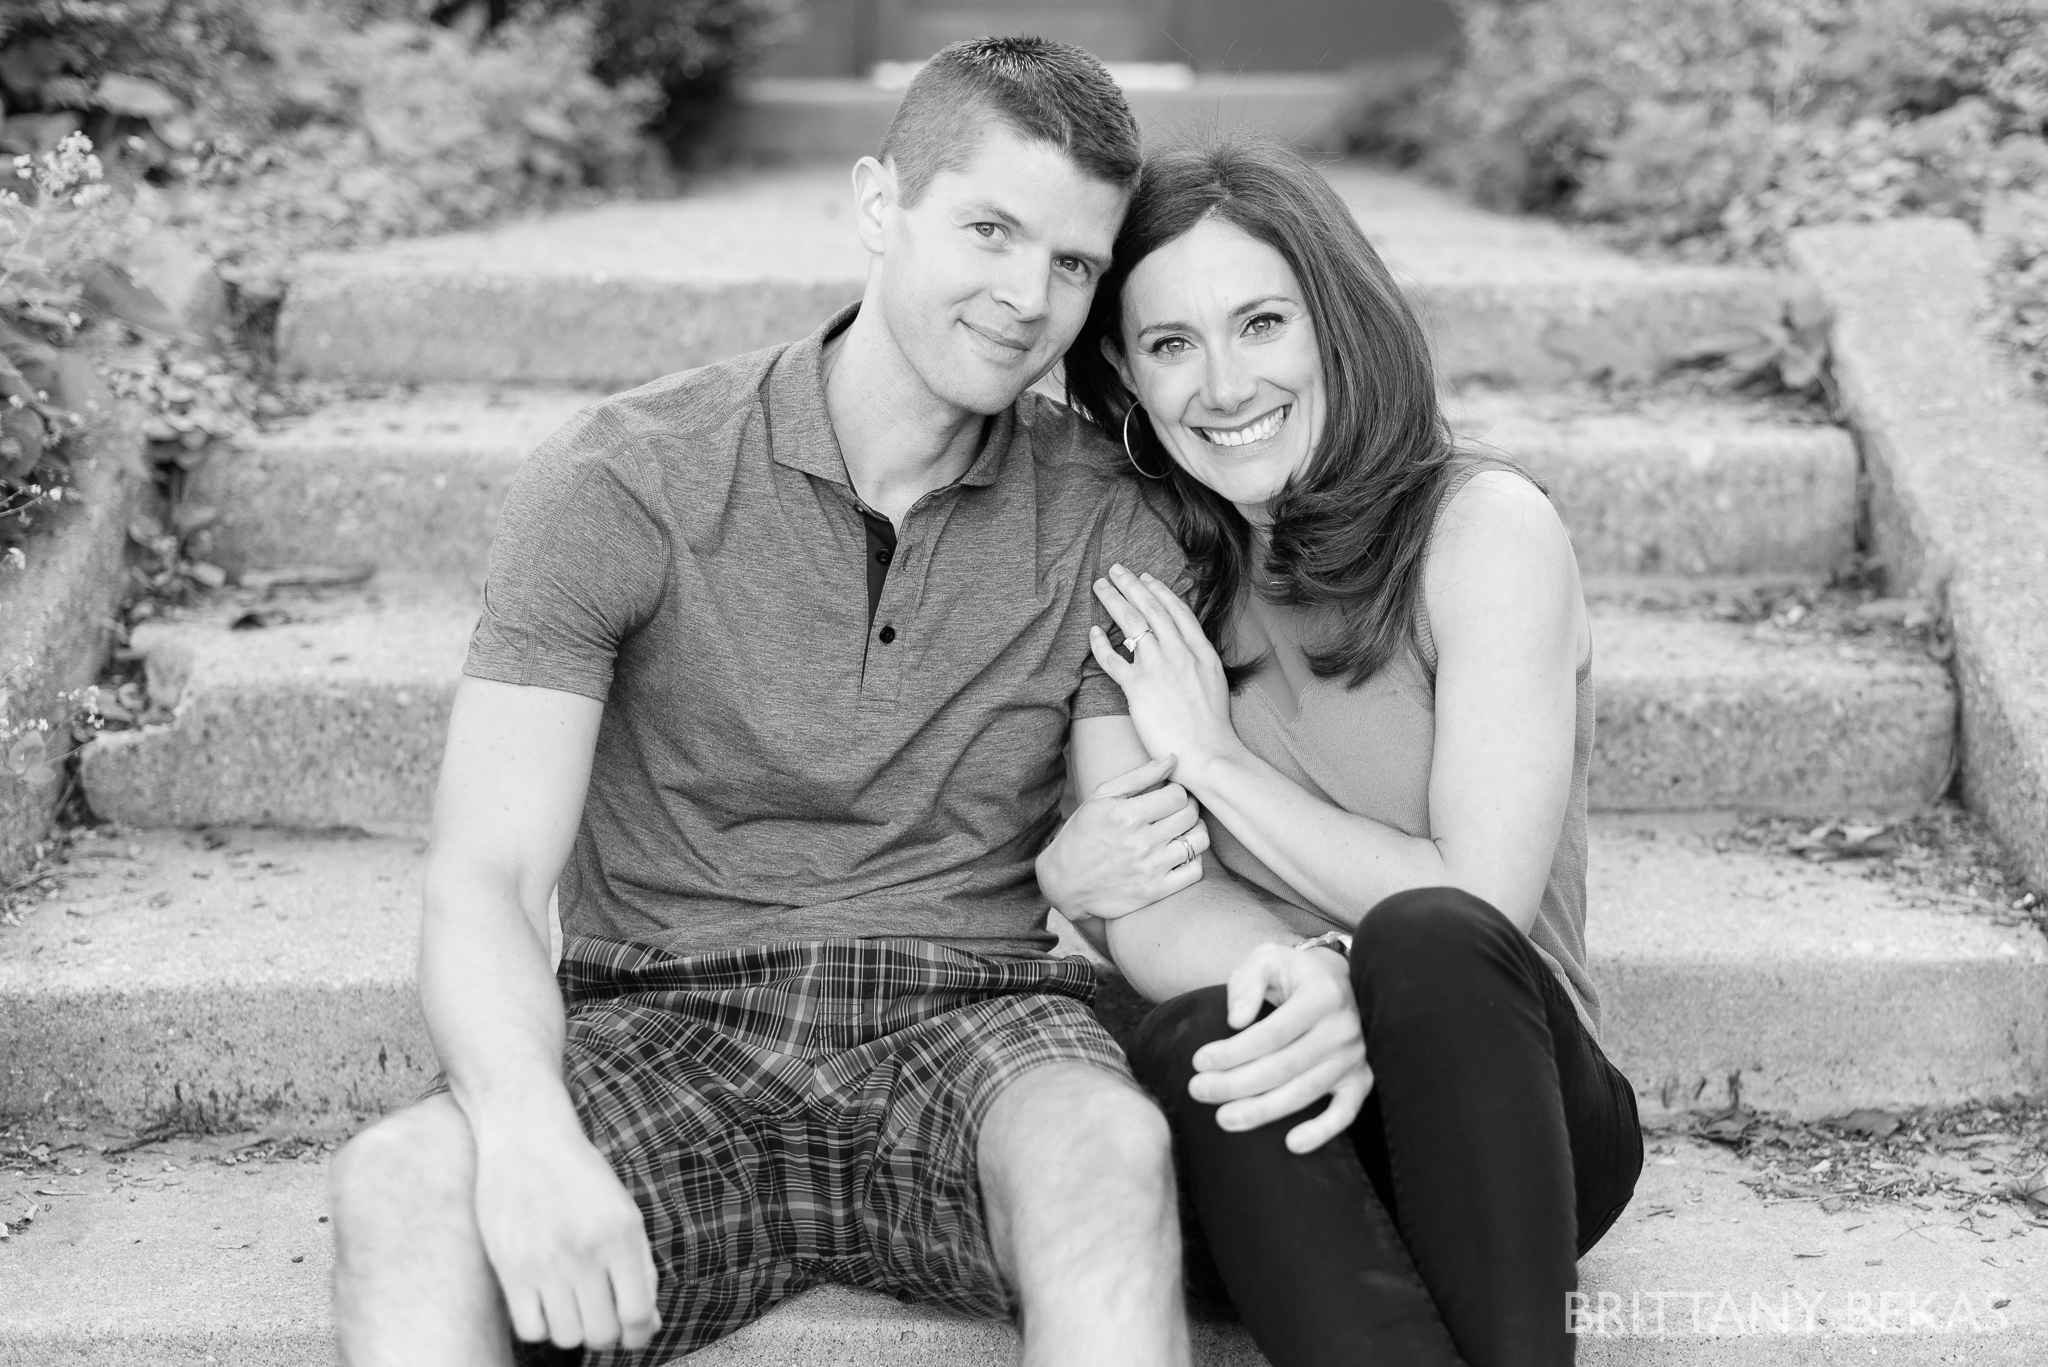 Chicago Engagement - Lincoln Park Engagement Photos - Brittany Bekas Photography_0008